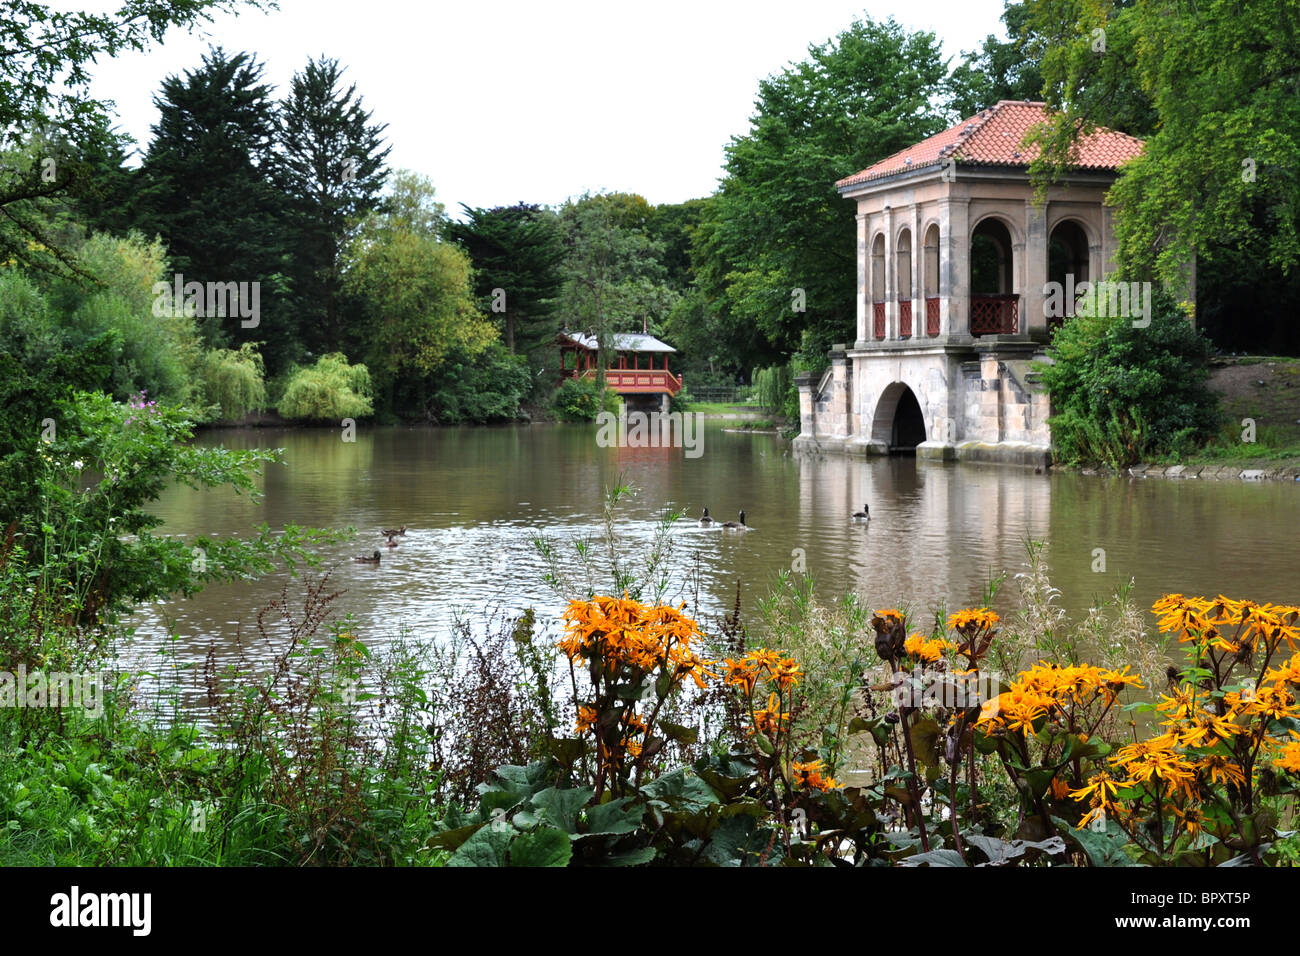 The Swiss bridge and the boathouse in Birkenhead Park - Stock Image